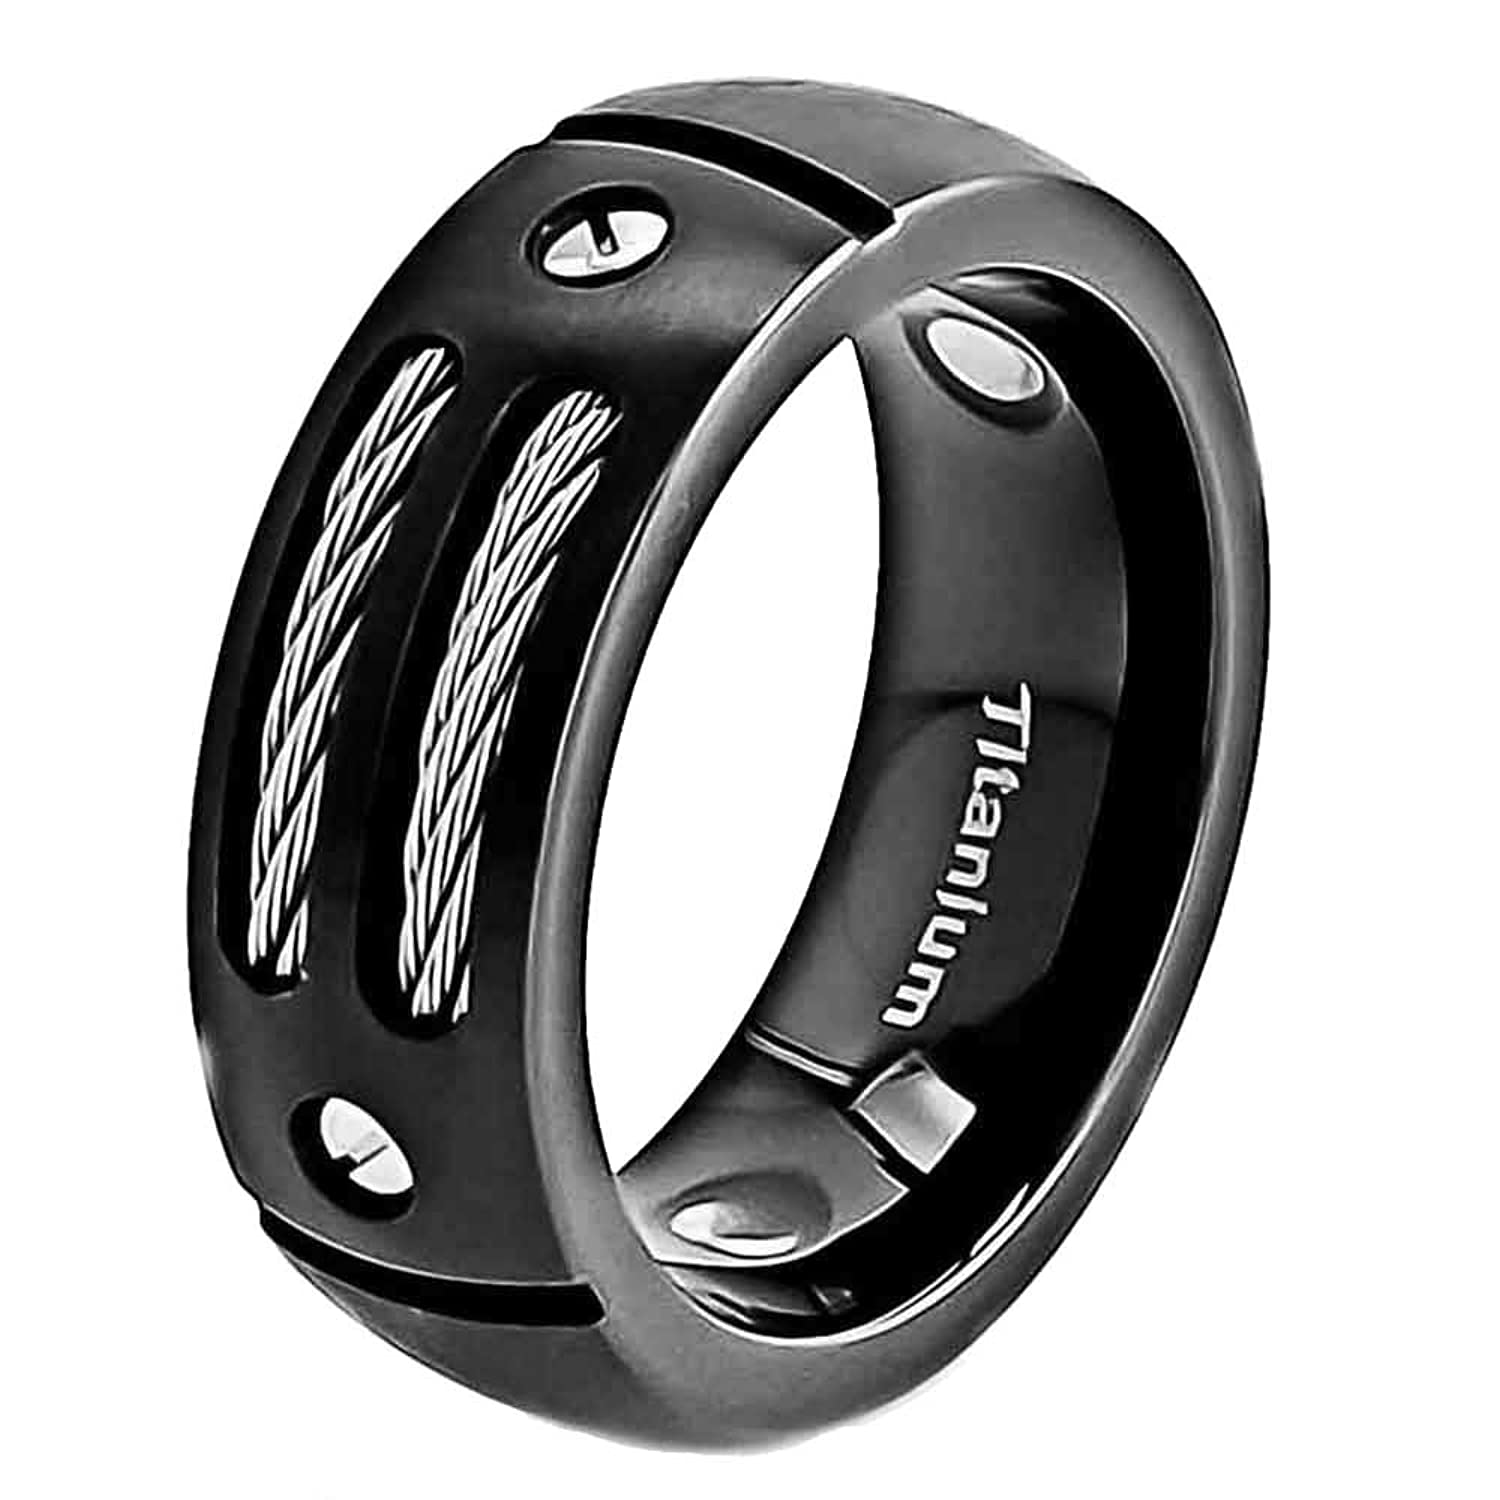 black wedding com men amazon spj cables titanium with stainless band dp and screw design steel silver size rings